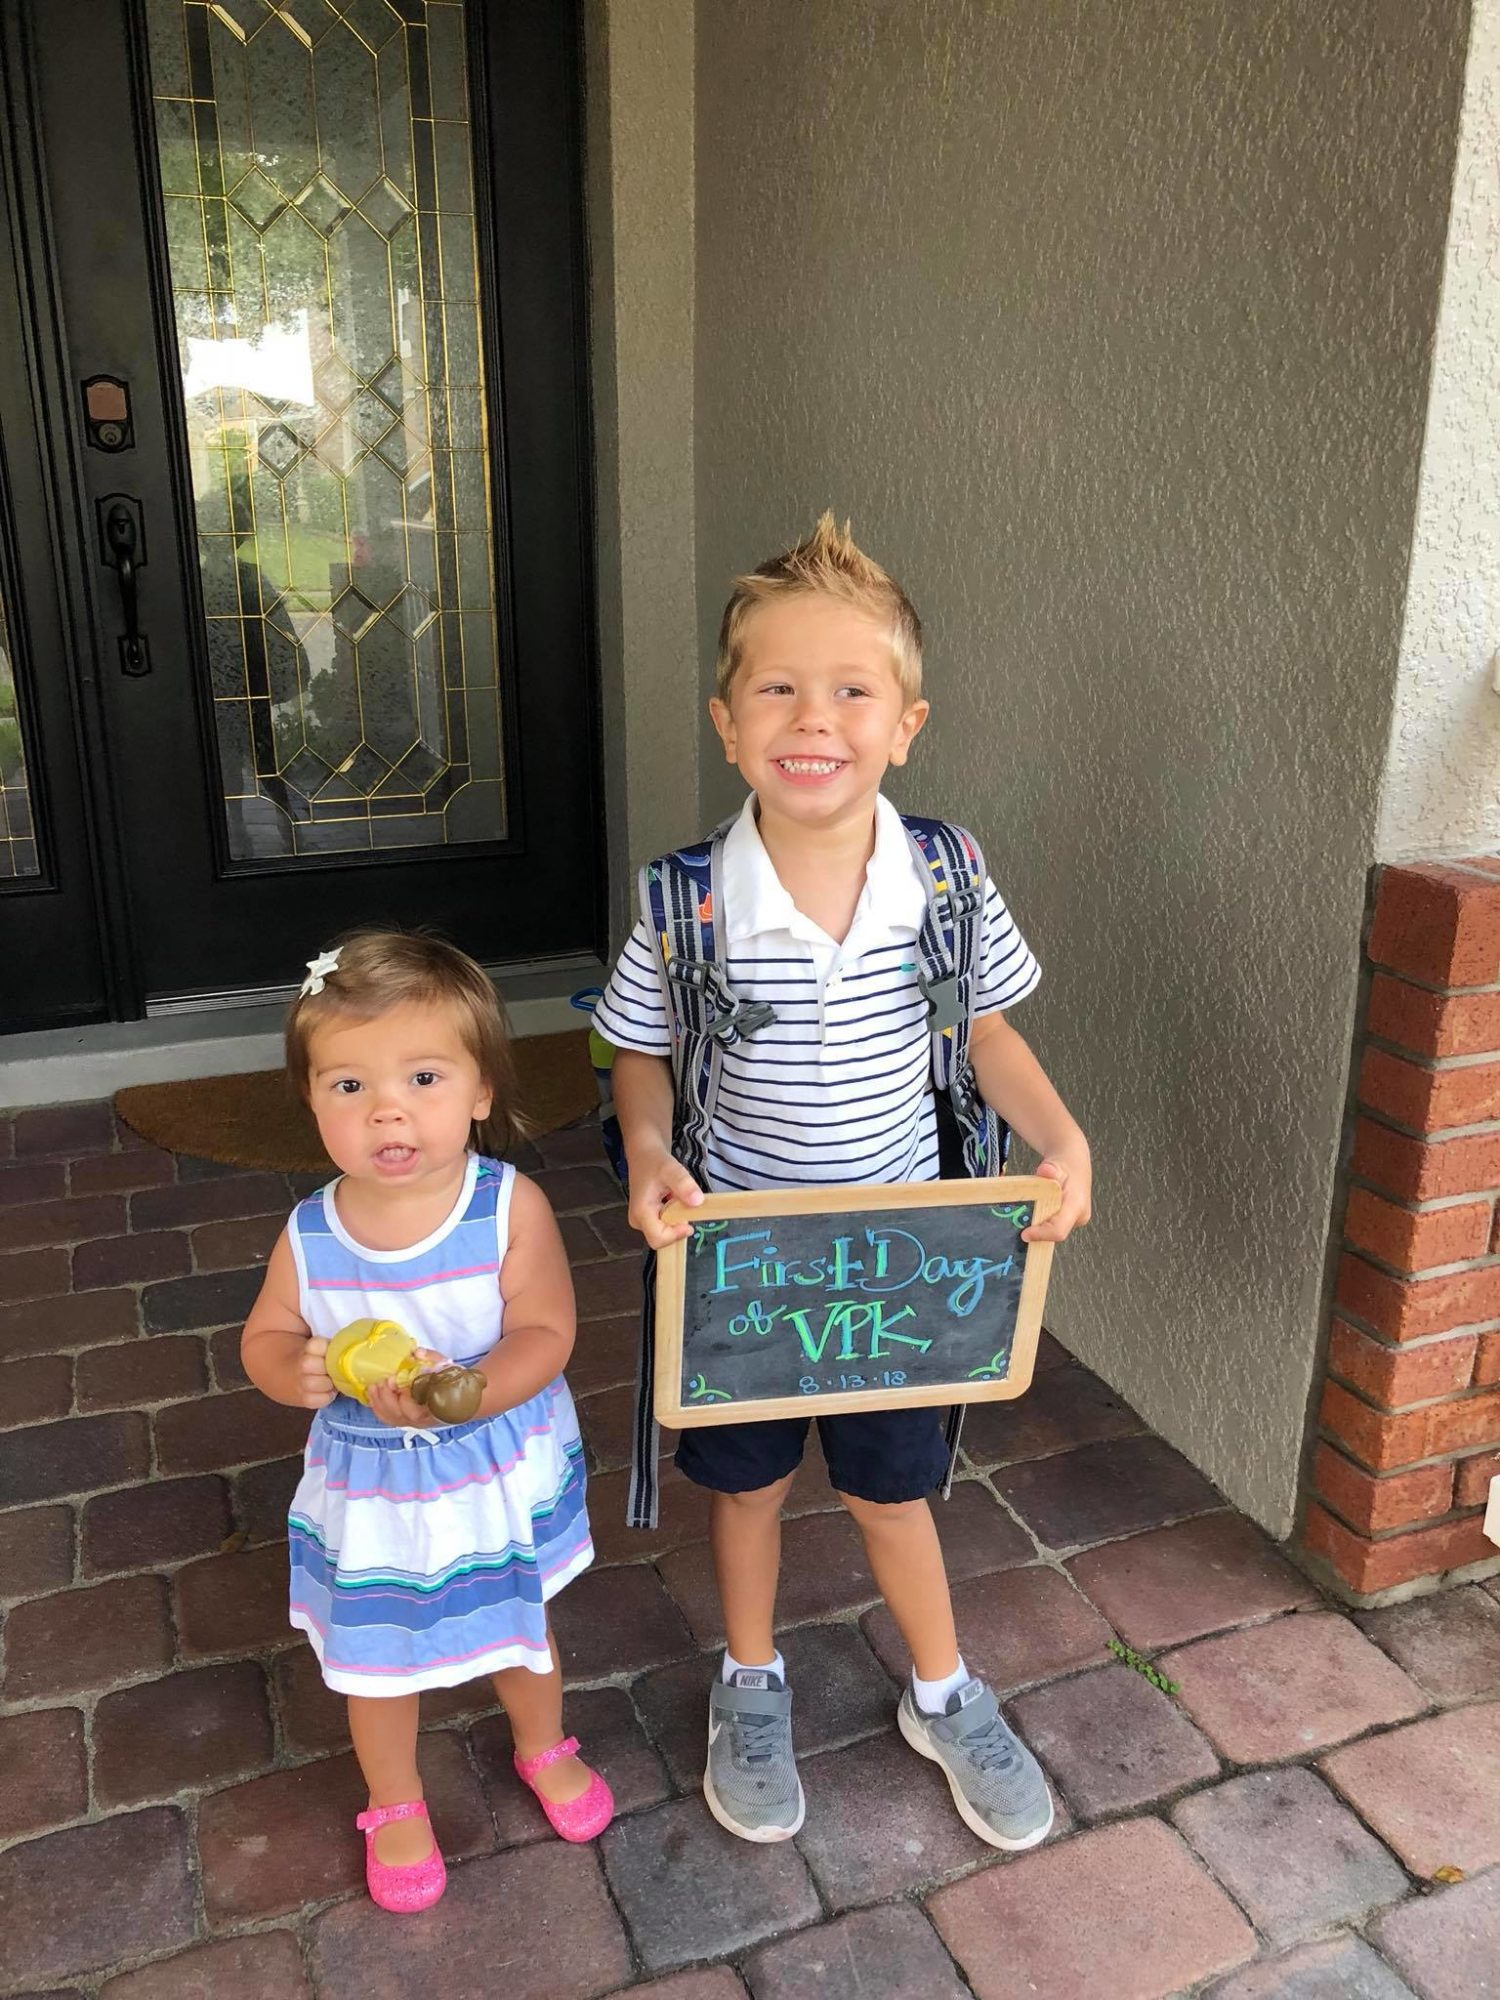 First Day of VPK